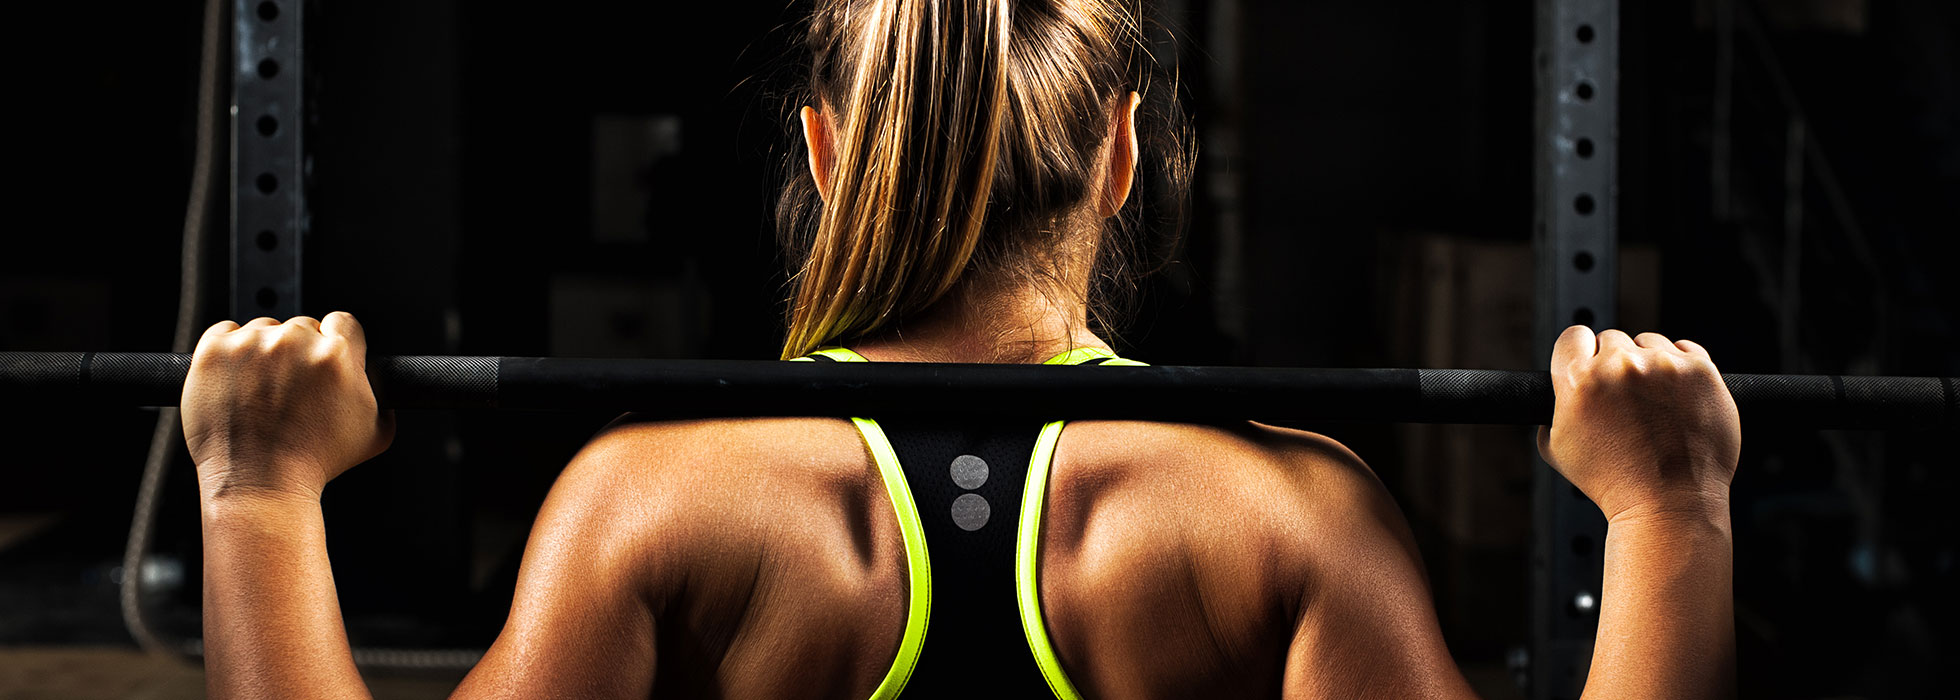 Top 5 Best Gyms To Join In Omaha, Nebraska and Tampa, Florida